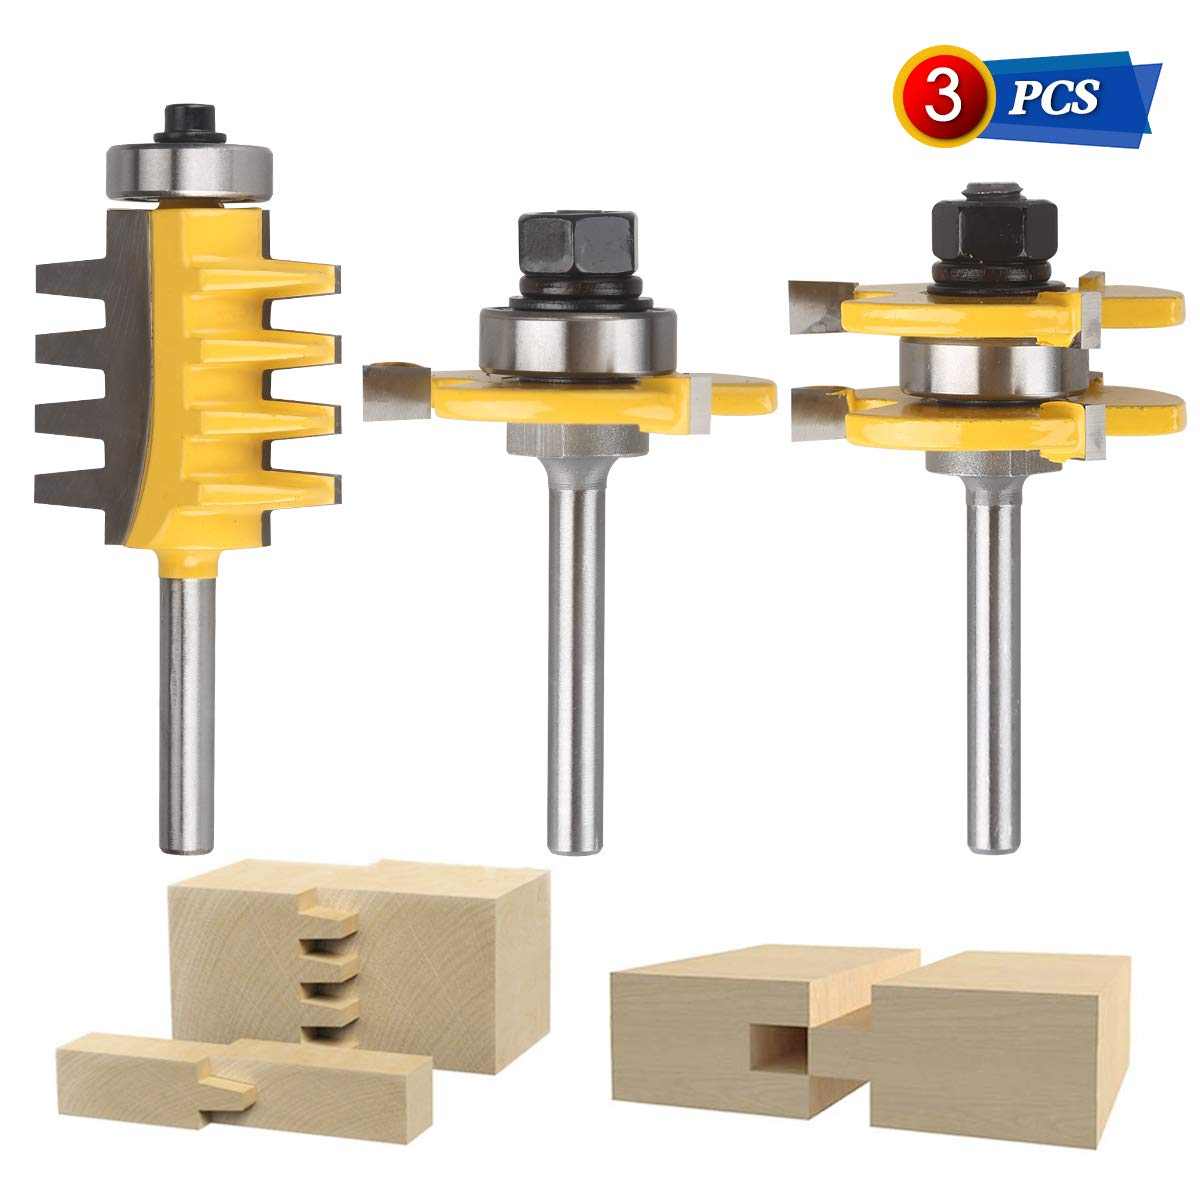 Jooyle Tongue and Groove Router Bits, 3PCS 1/4-Inch Shank Router Bit Set Finger Joint Router Bit Teeth Adjustable Wood Milling Cutter Perfect for Density Boards, Solid wood, MDF, Chipboard, Etc by Jooyle